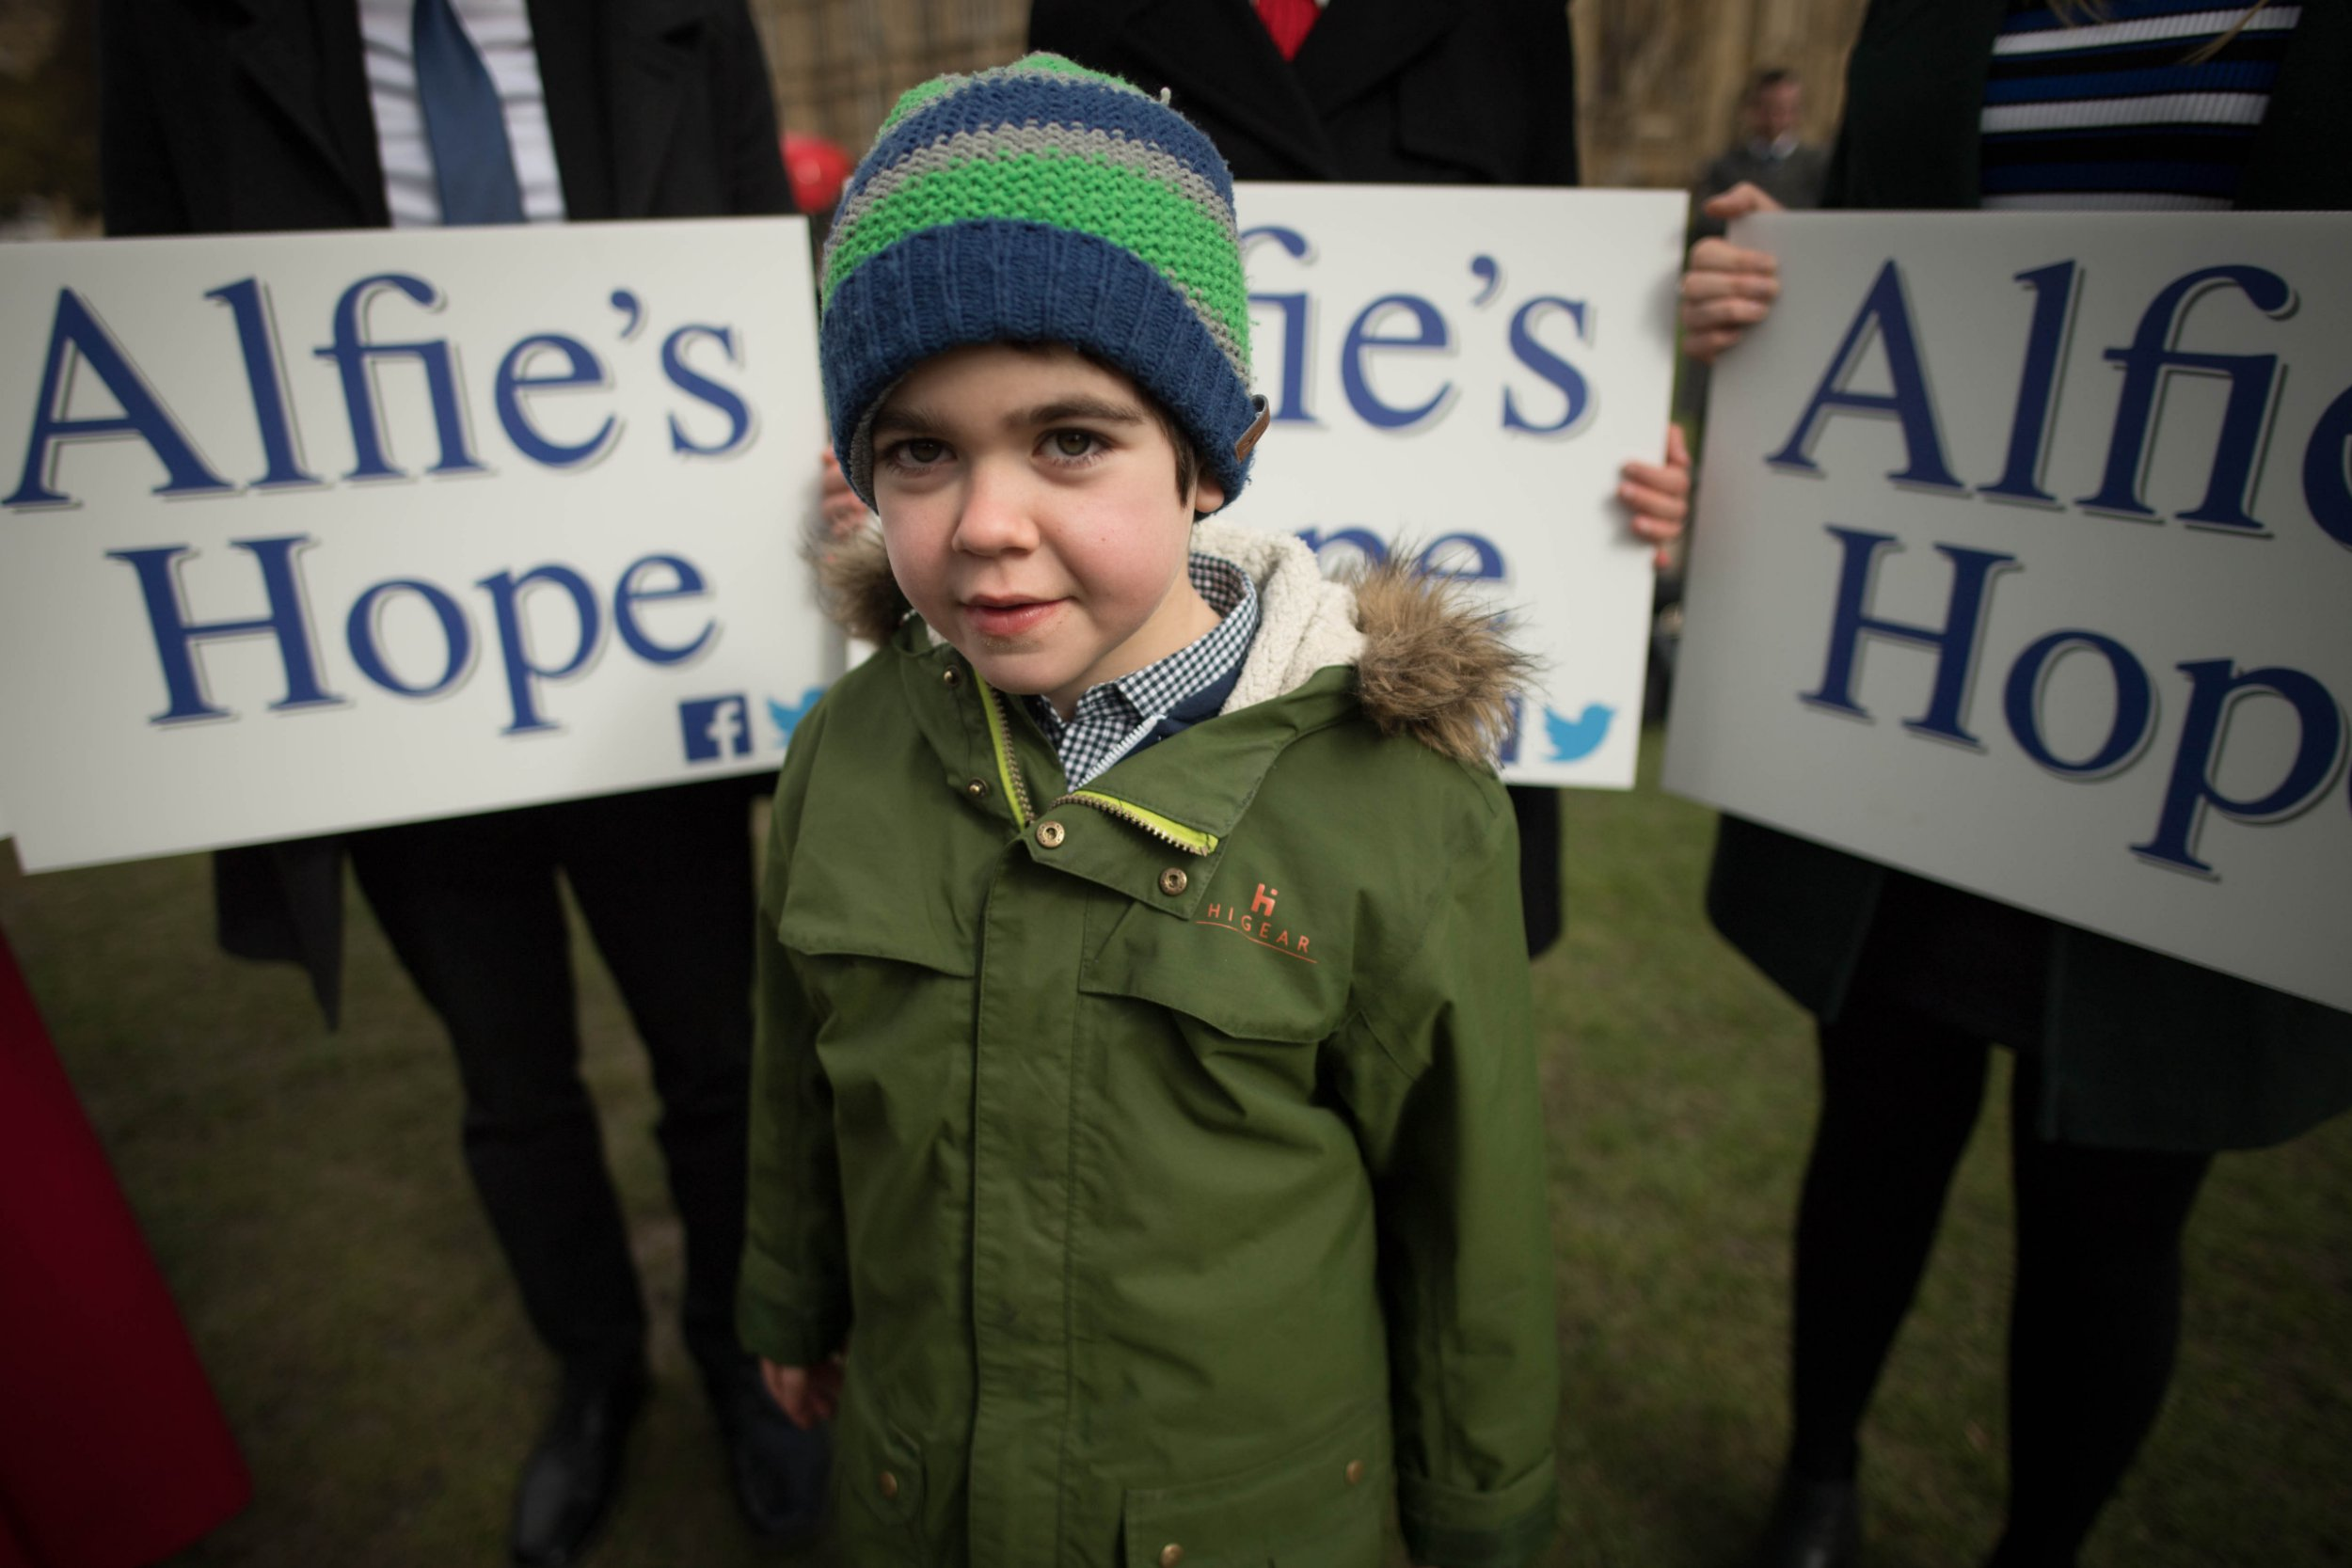 Six-year-old Alfie Dingley with supporters in Westminster, London, before handing in a 380,000-strong petition to Number 10 Downing Street asking for him to be given medicinal cannabis to treat his epilepsy. PRESS ASSOCIATION Photo. Picture date: Tuesday March 20, 2018. Alfie suffers from a rare condition and can have up to 150 potentially life-threatening seizures a month. See PA story HEALTH Cannabis. Photo credit should read: Stefan Rousseau/PA Wire